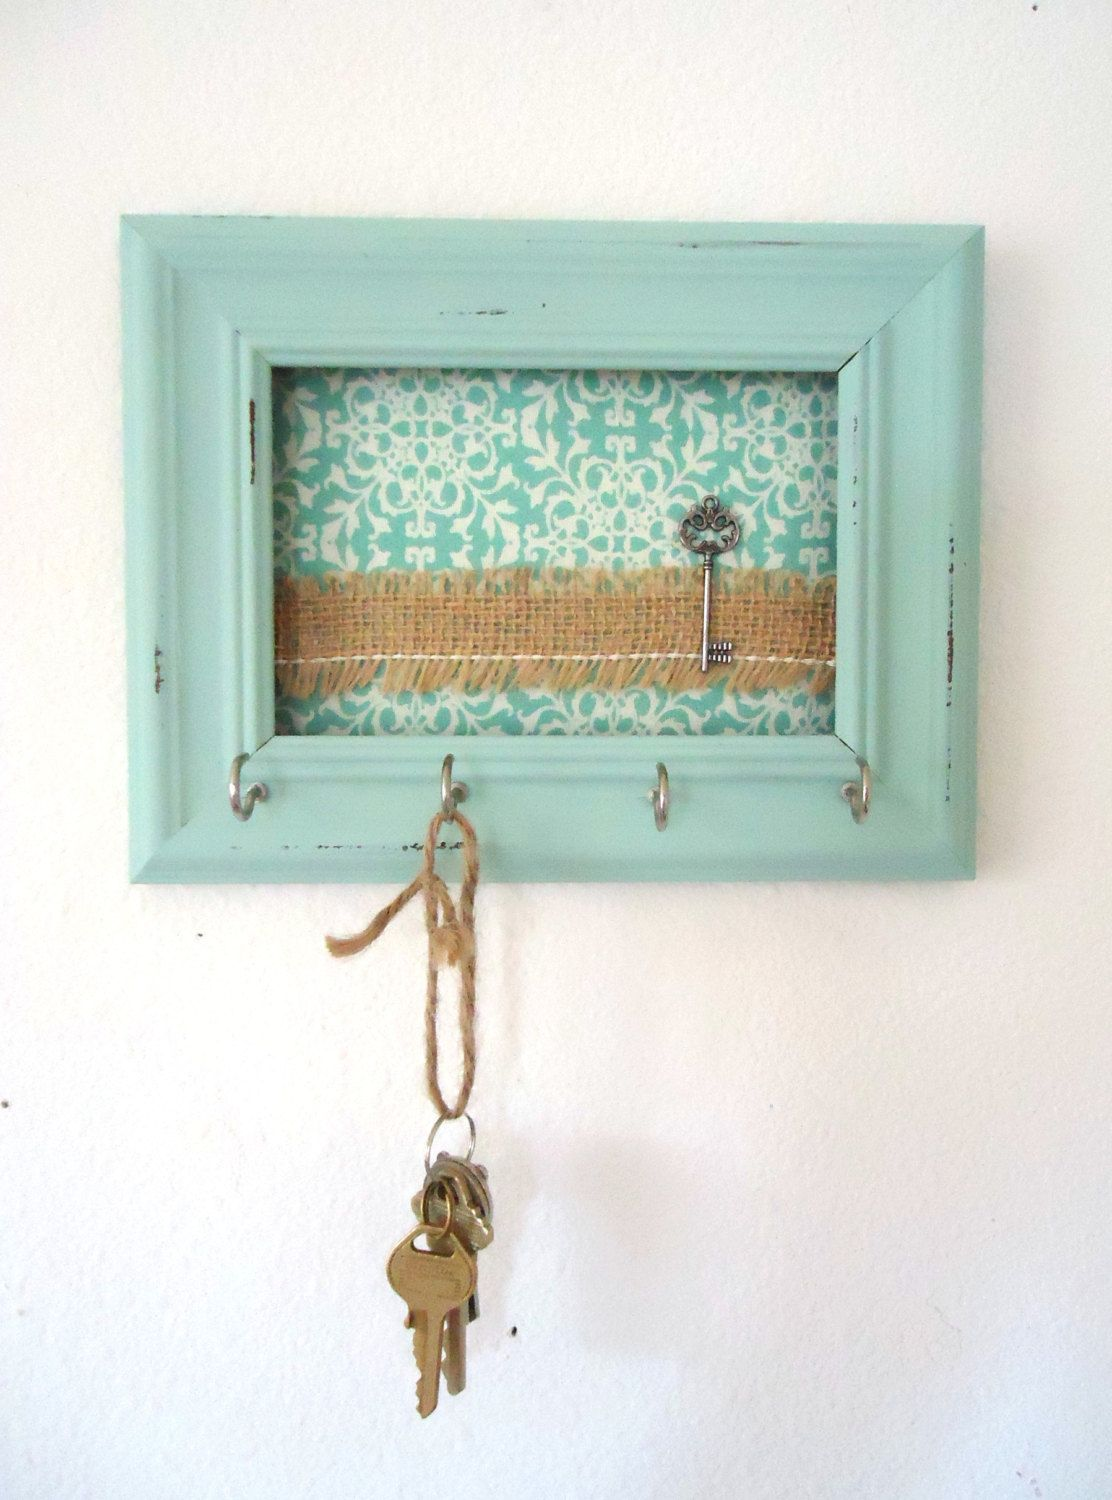 key holder wall hook shabby chic frame home decor organization tiffany blue 5 silver hooks. Black Bedroom Furniture Sets. Home Design Ideas